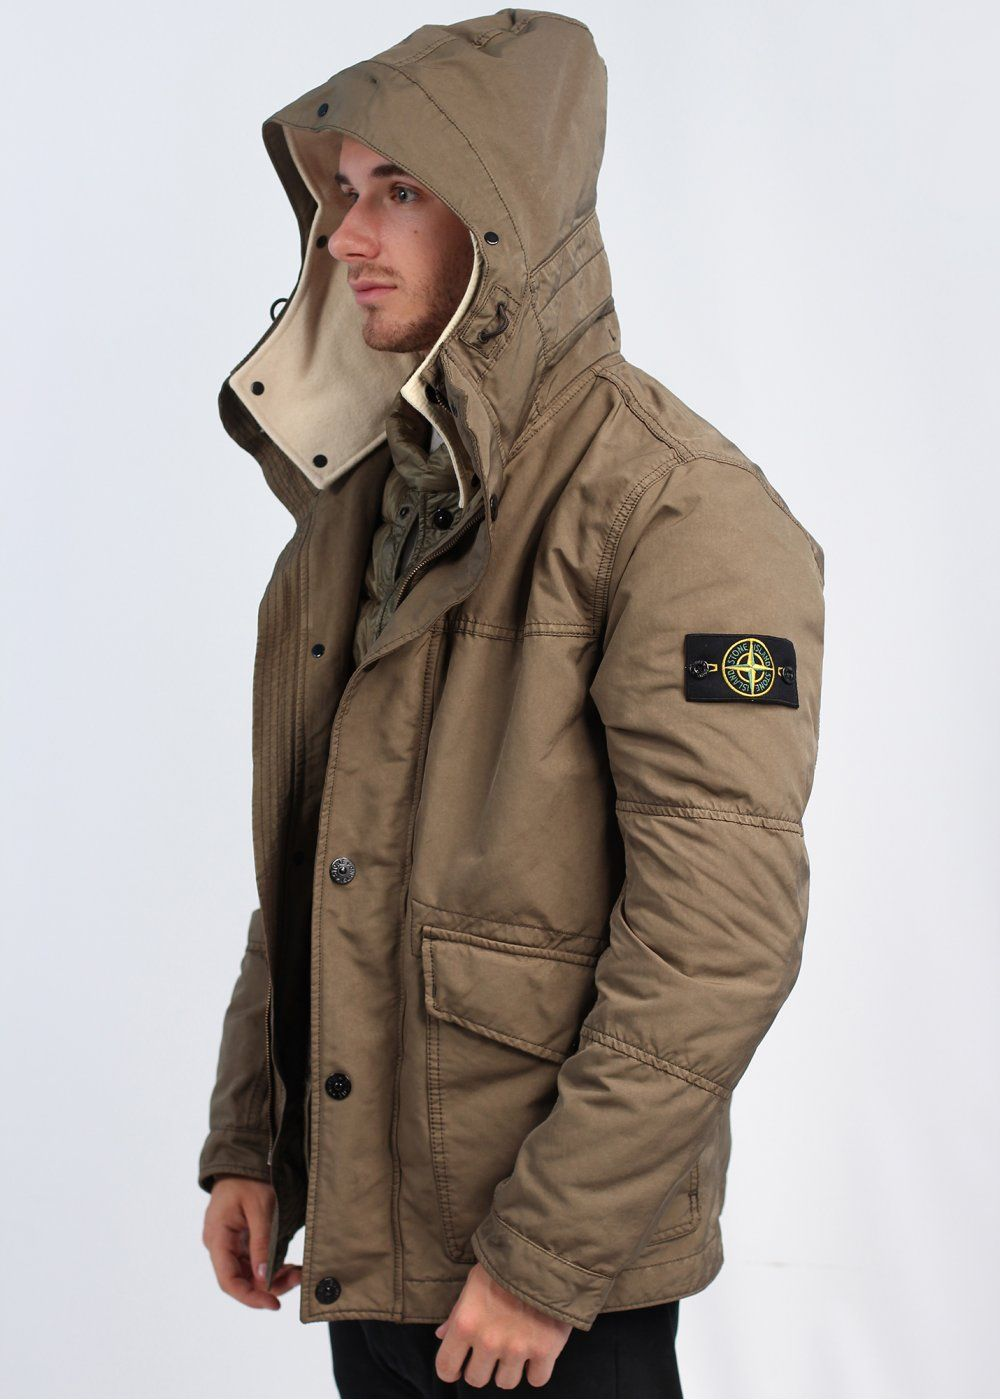 3f06a2ab3 Sportswear Company. Winter Outfits · Outdoor Jackets · Stone Island Unknown  Football Casuals, Football Casual Clothing, Mens Outfitters, Outdoor Outfit,